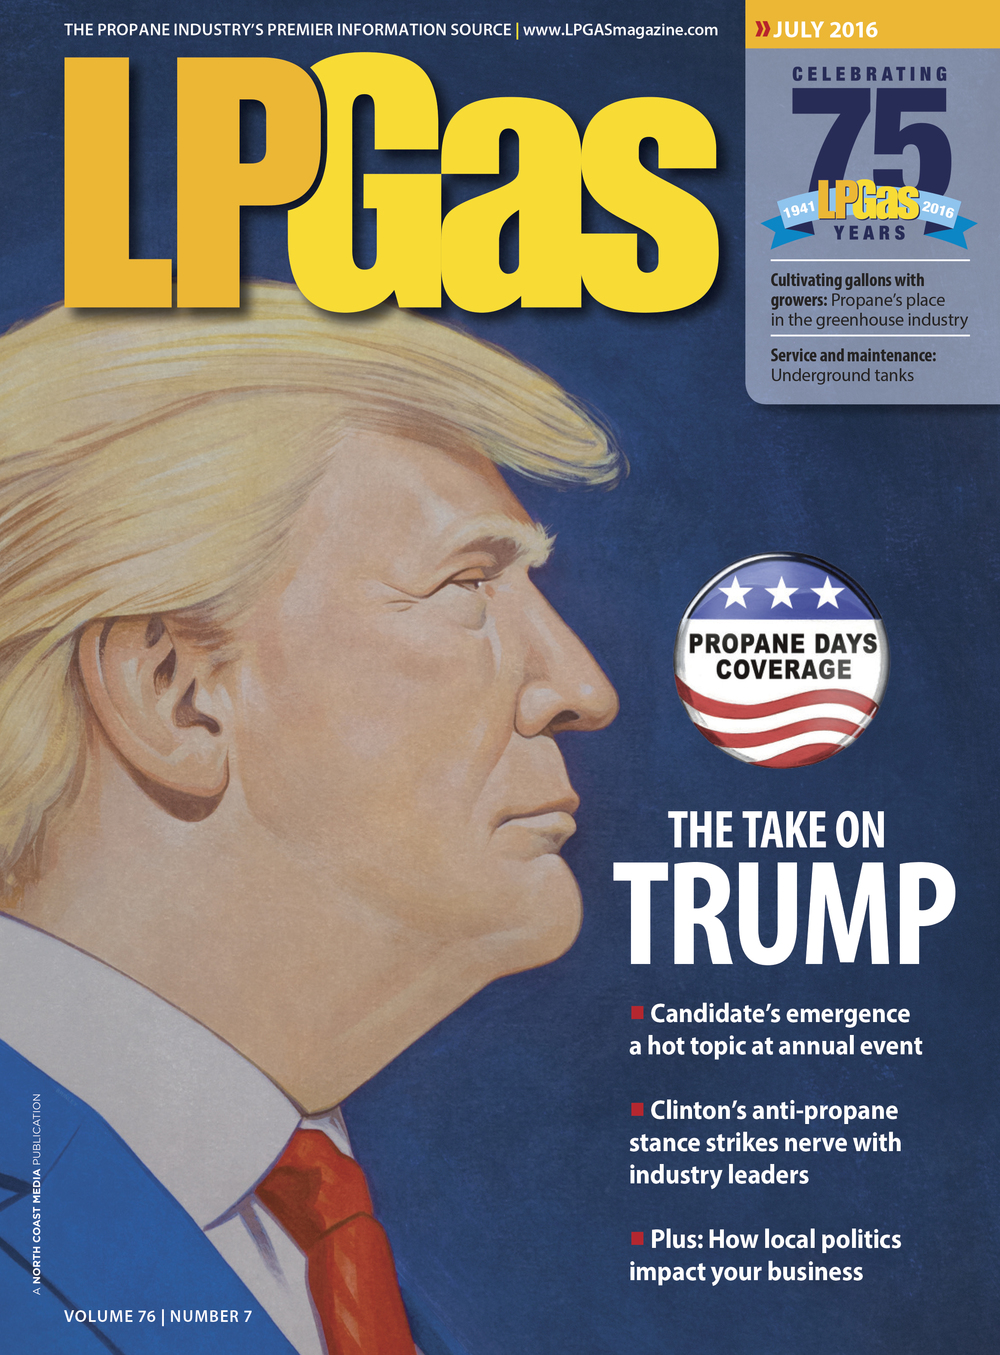 Donald Trump: The Nontraditional Candidate   | LPGas magazine July 2016 | What If? cover illustration